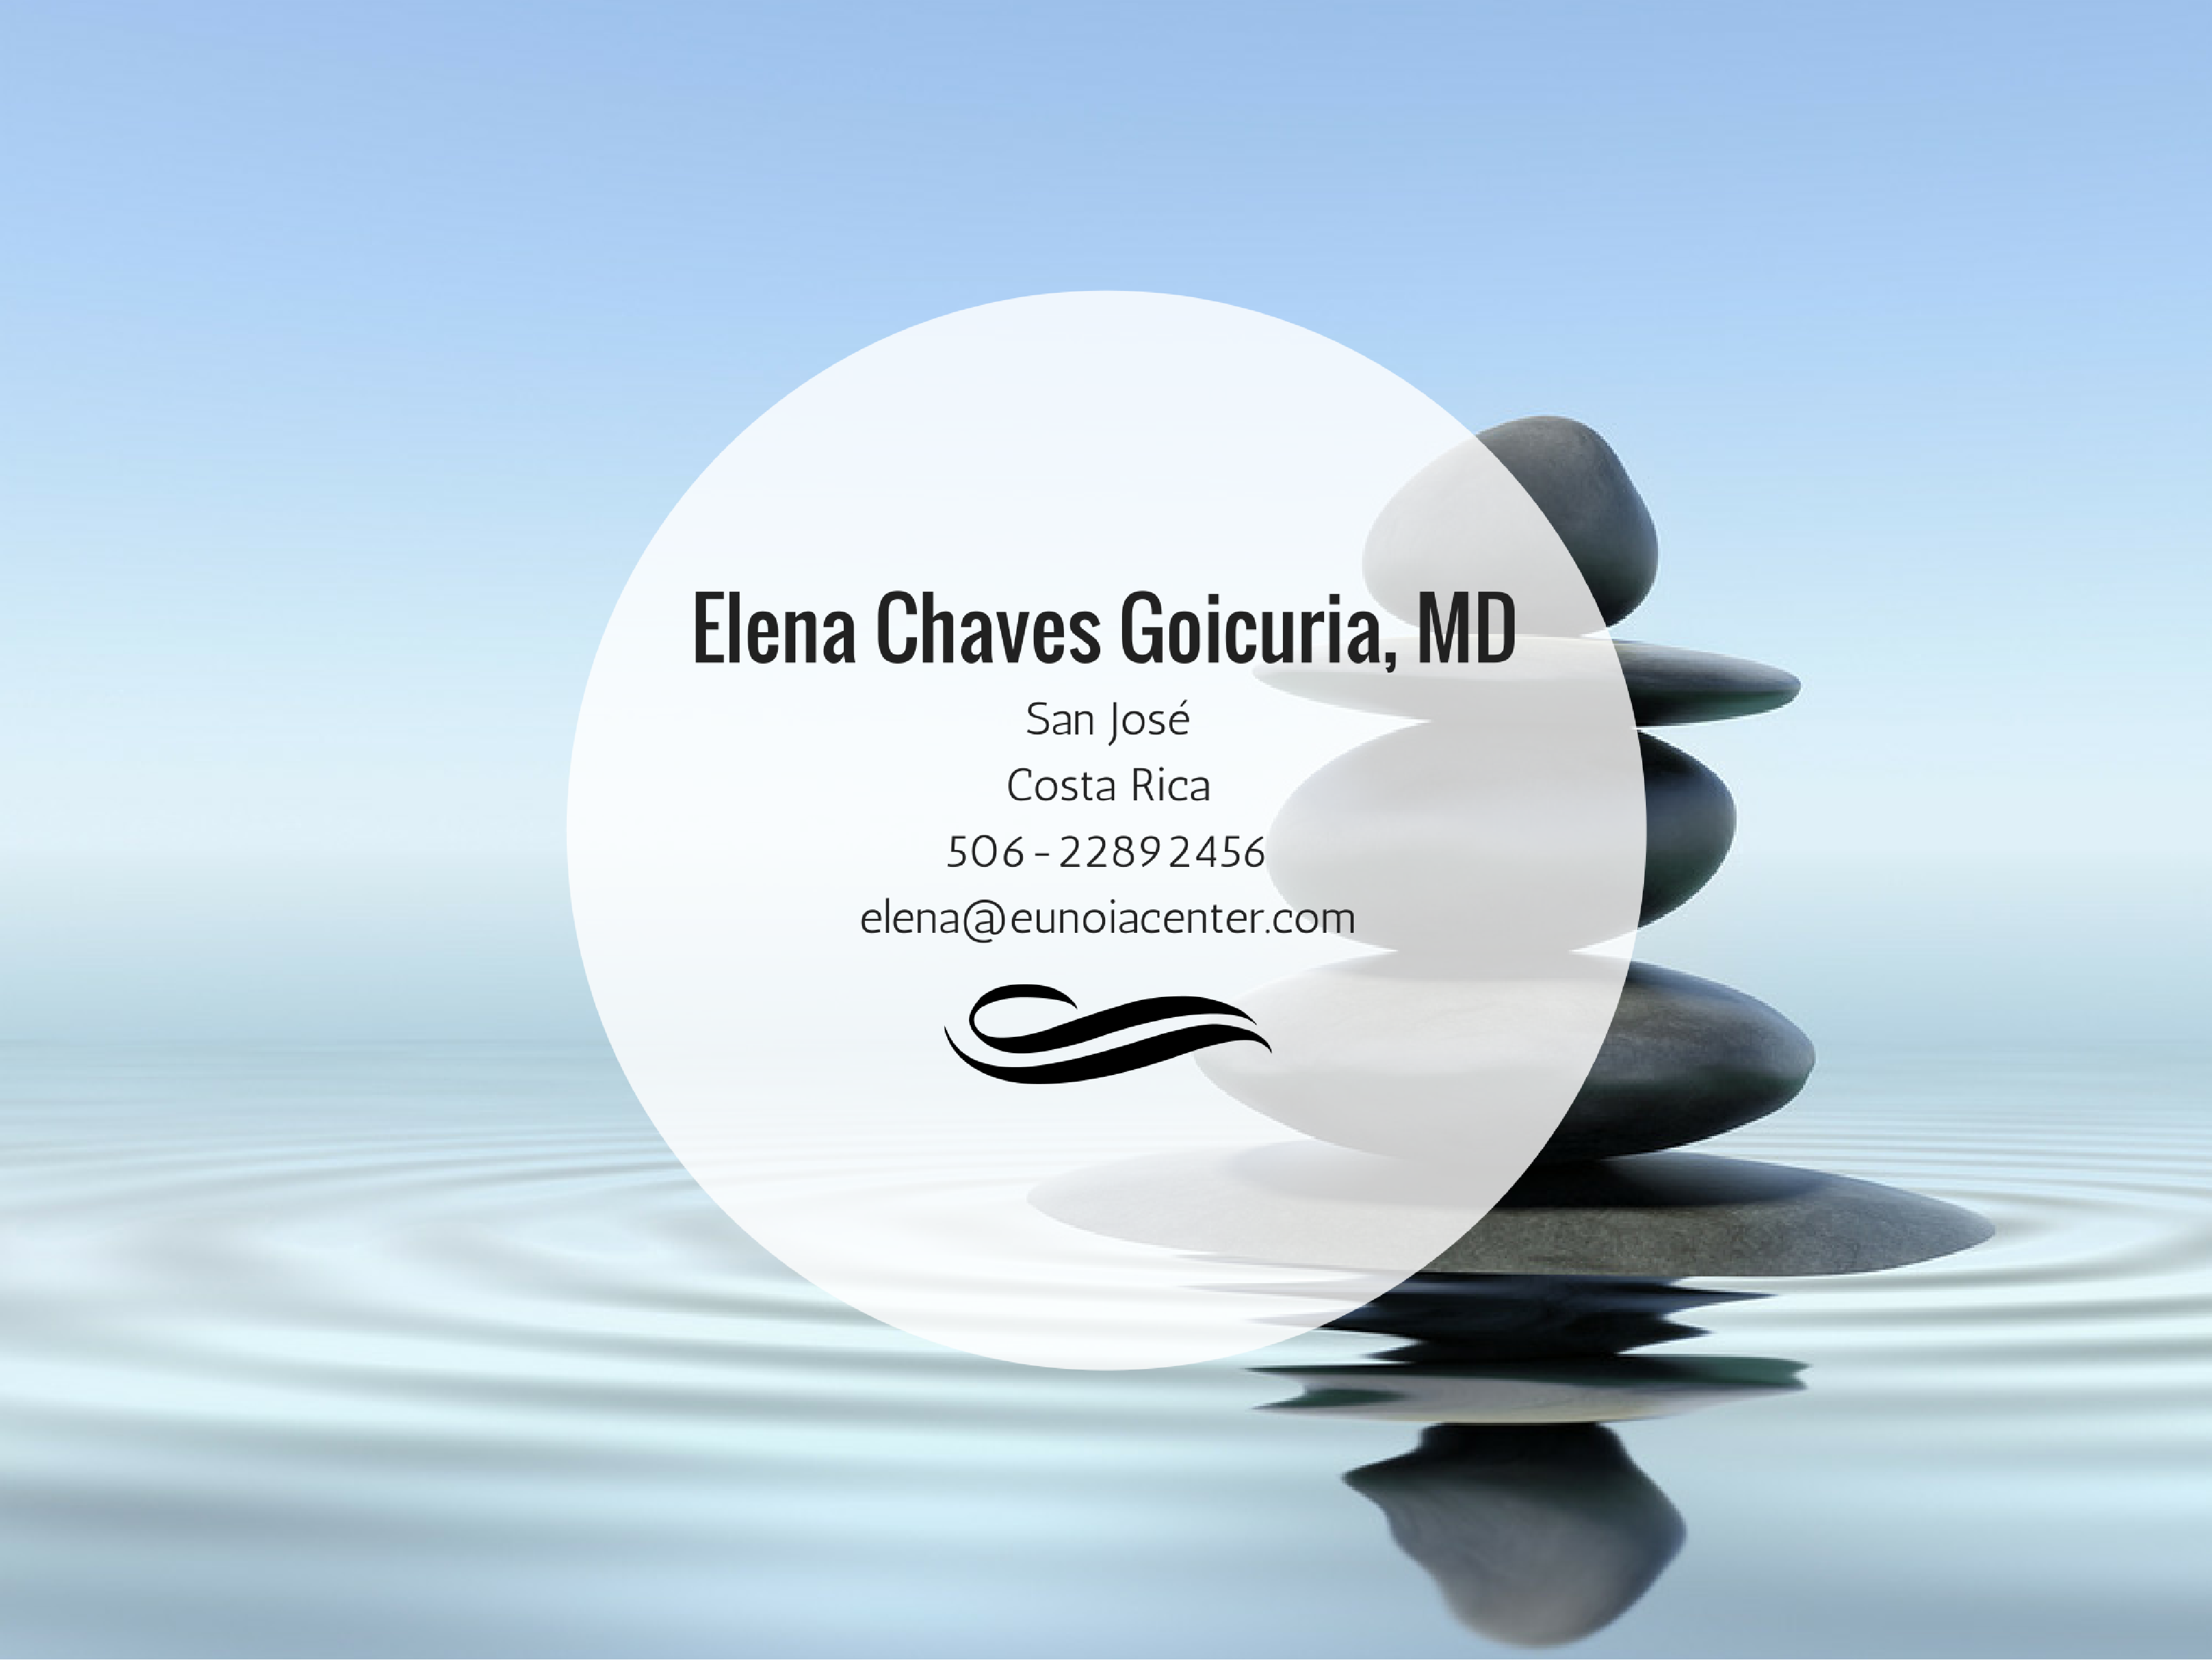 Elena Chaves Goicuria, MD